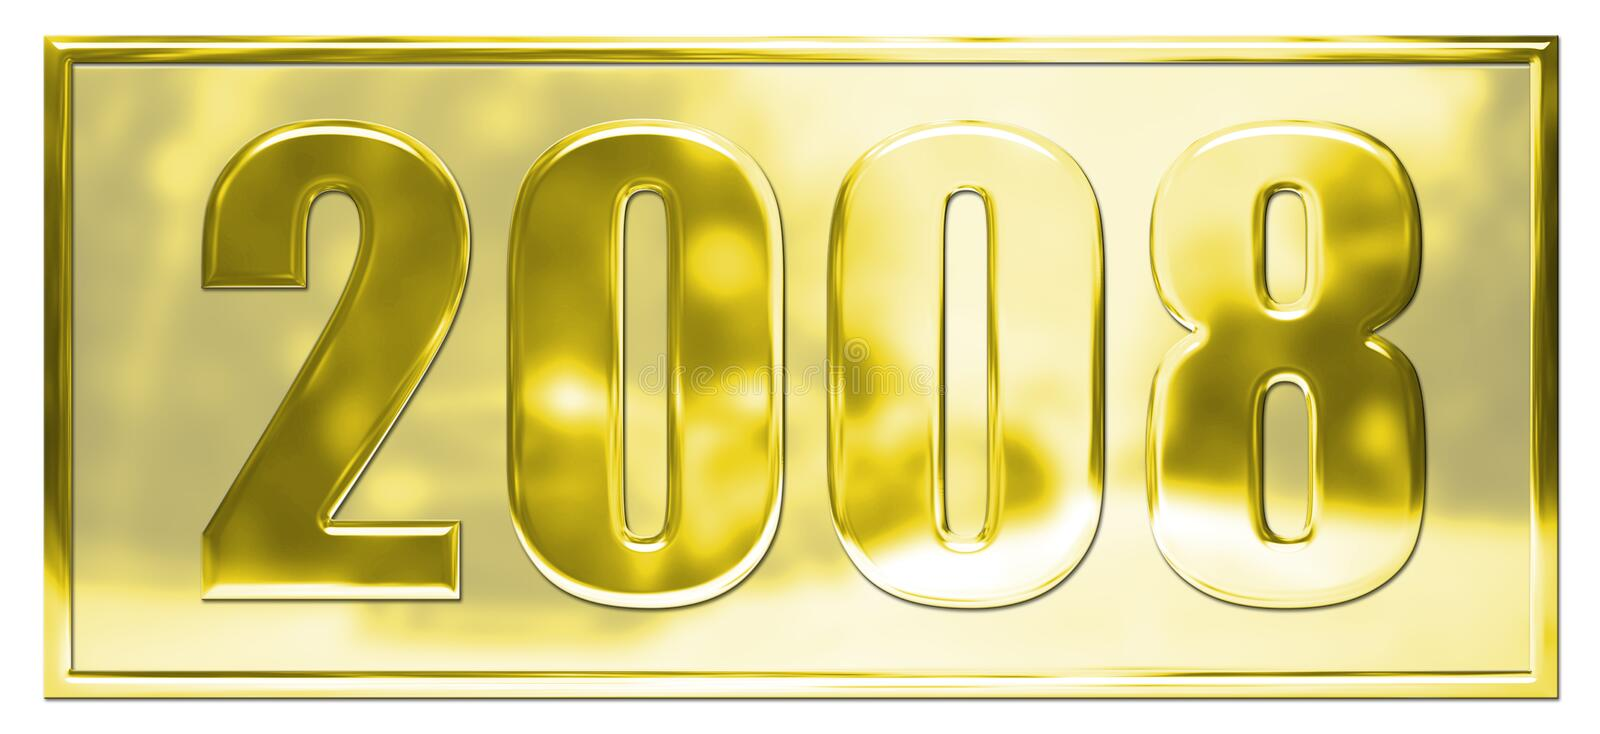 Gold 2008. Created in Photoshop CS3, Gold 2008 Plate. Hi Res 300dpi vector illustration